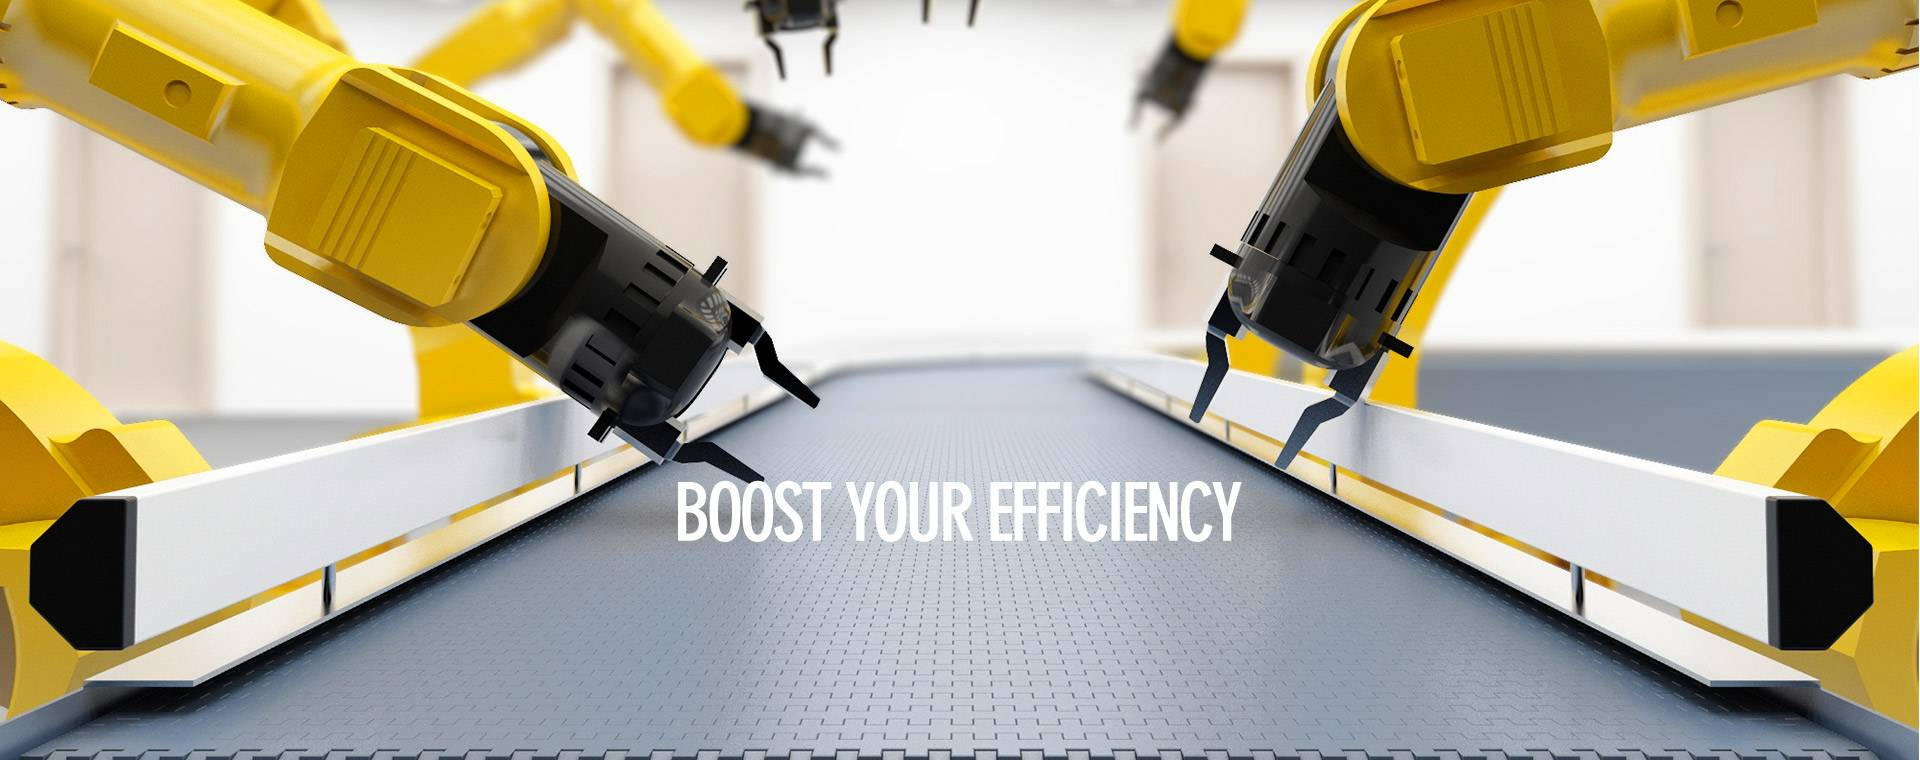 boost-your-efficiency